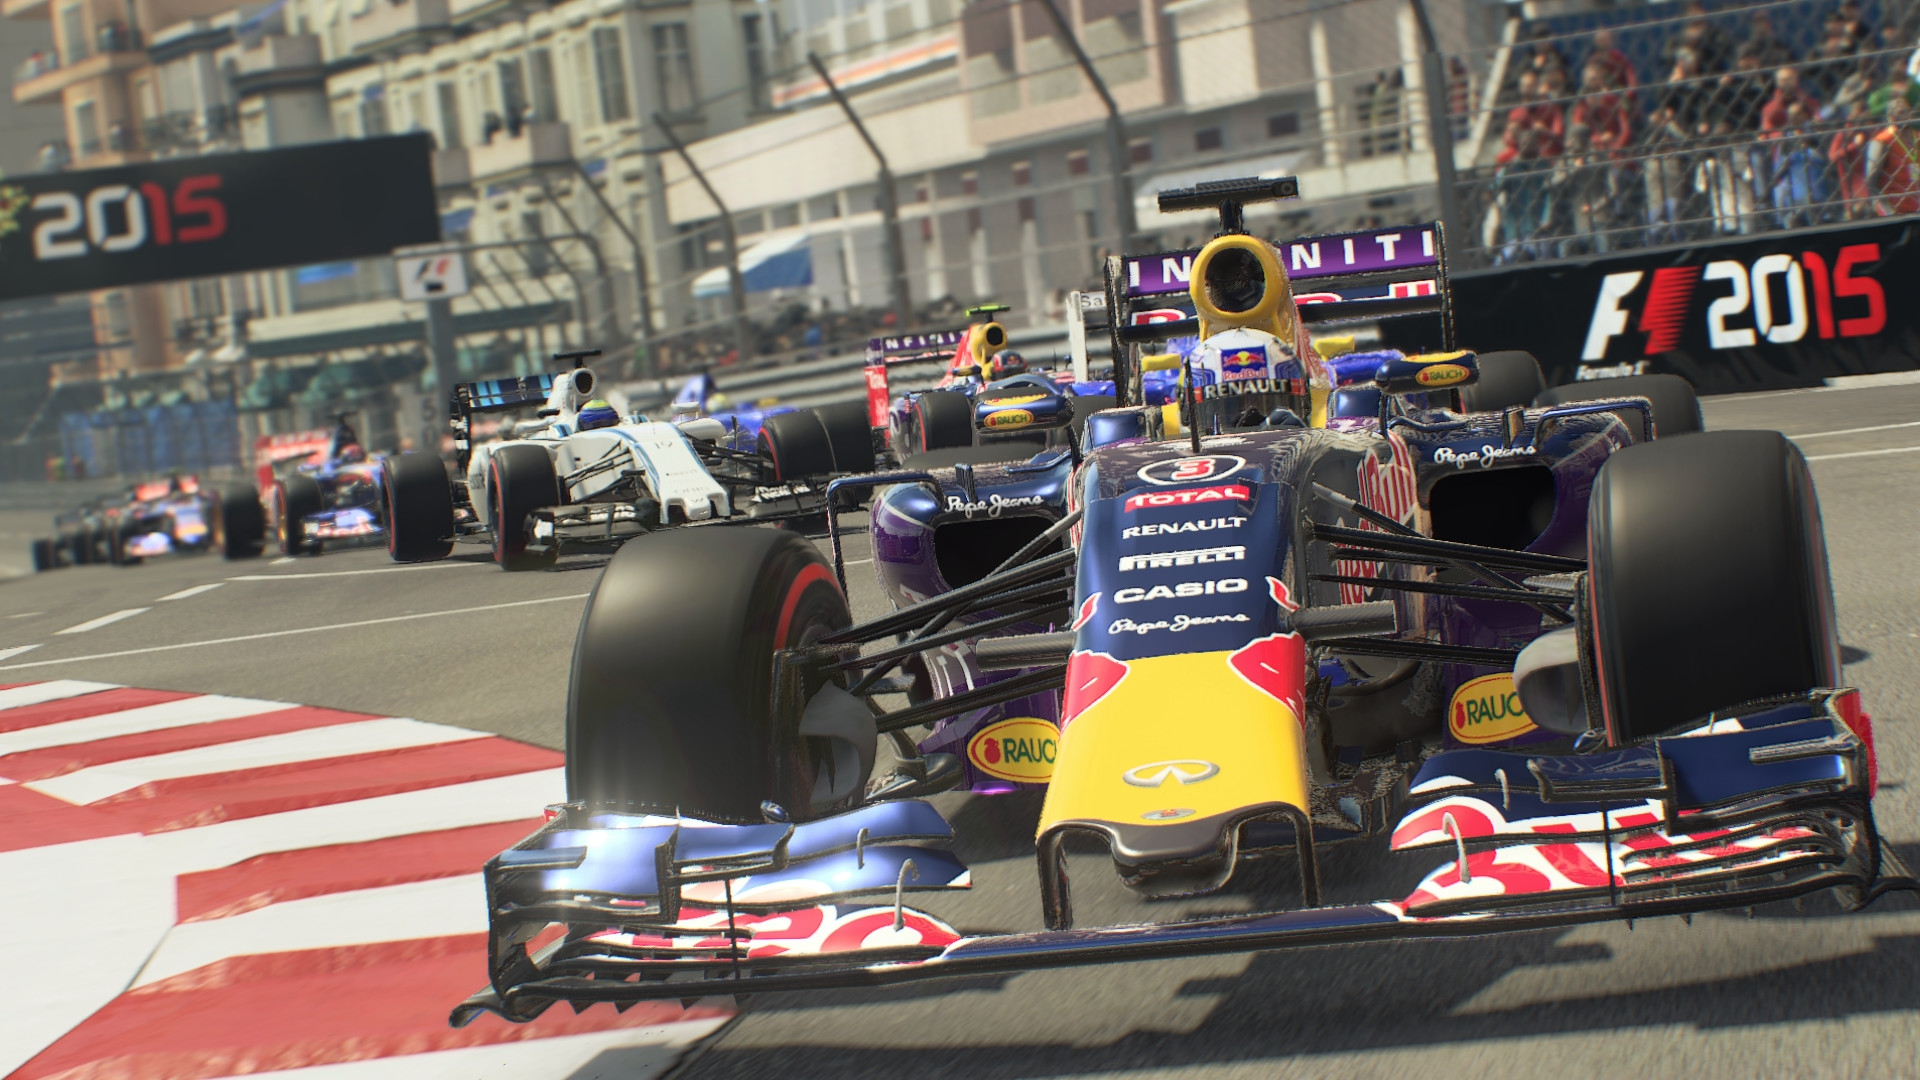 Find the best laptop for F1 2015